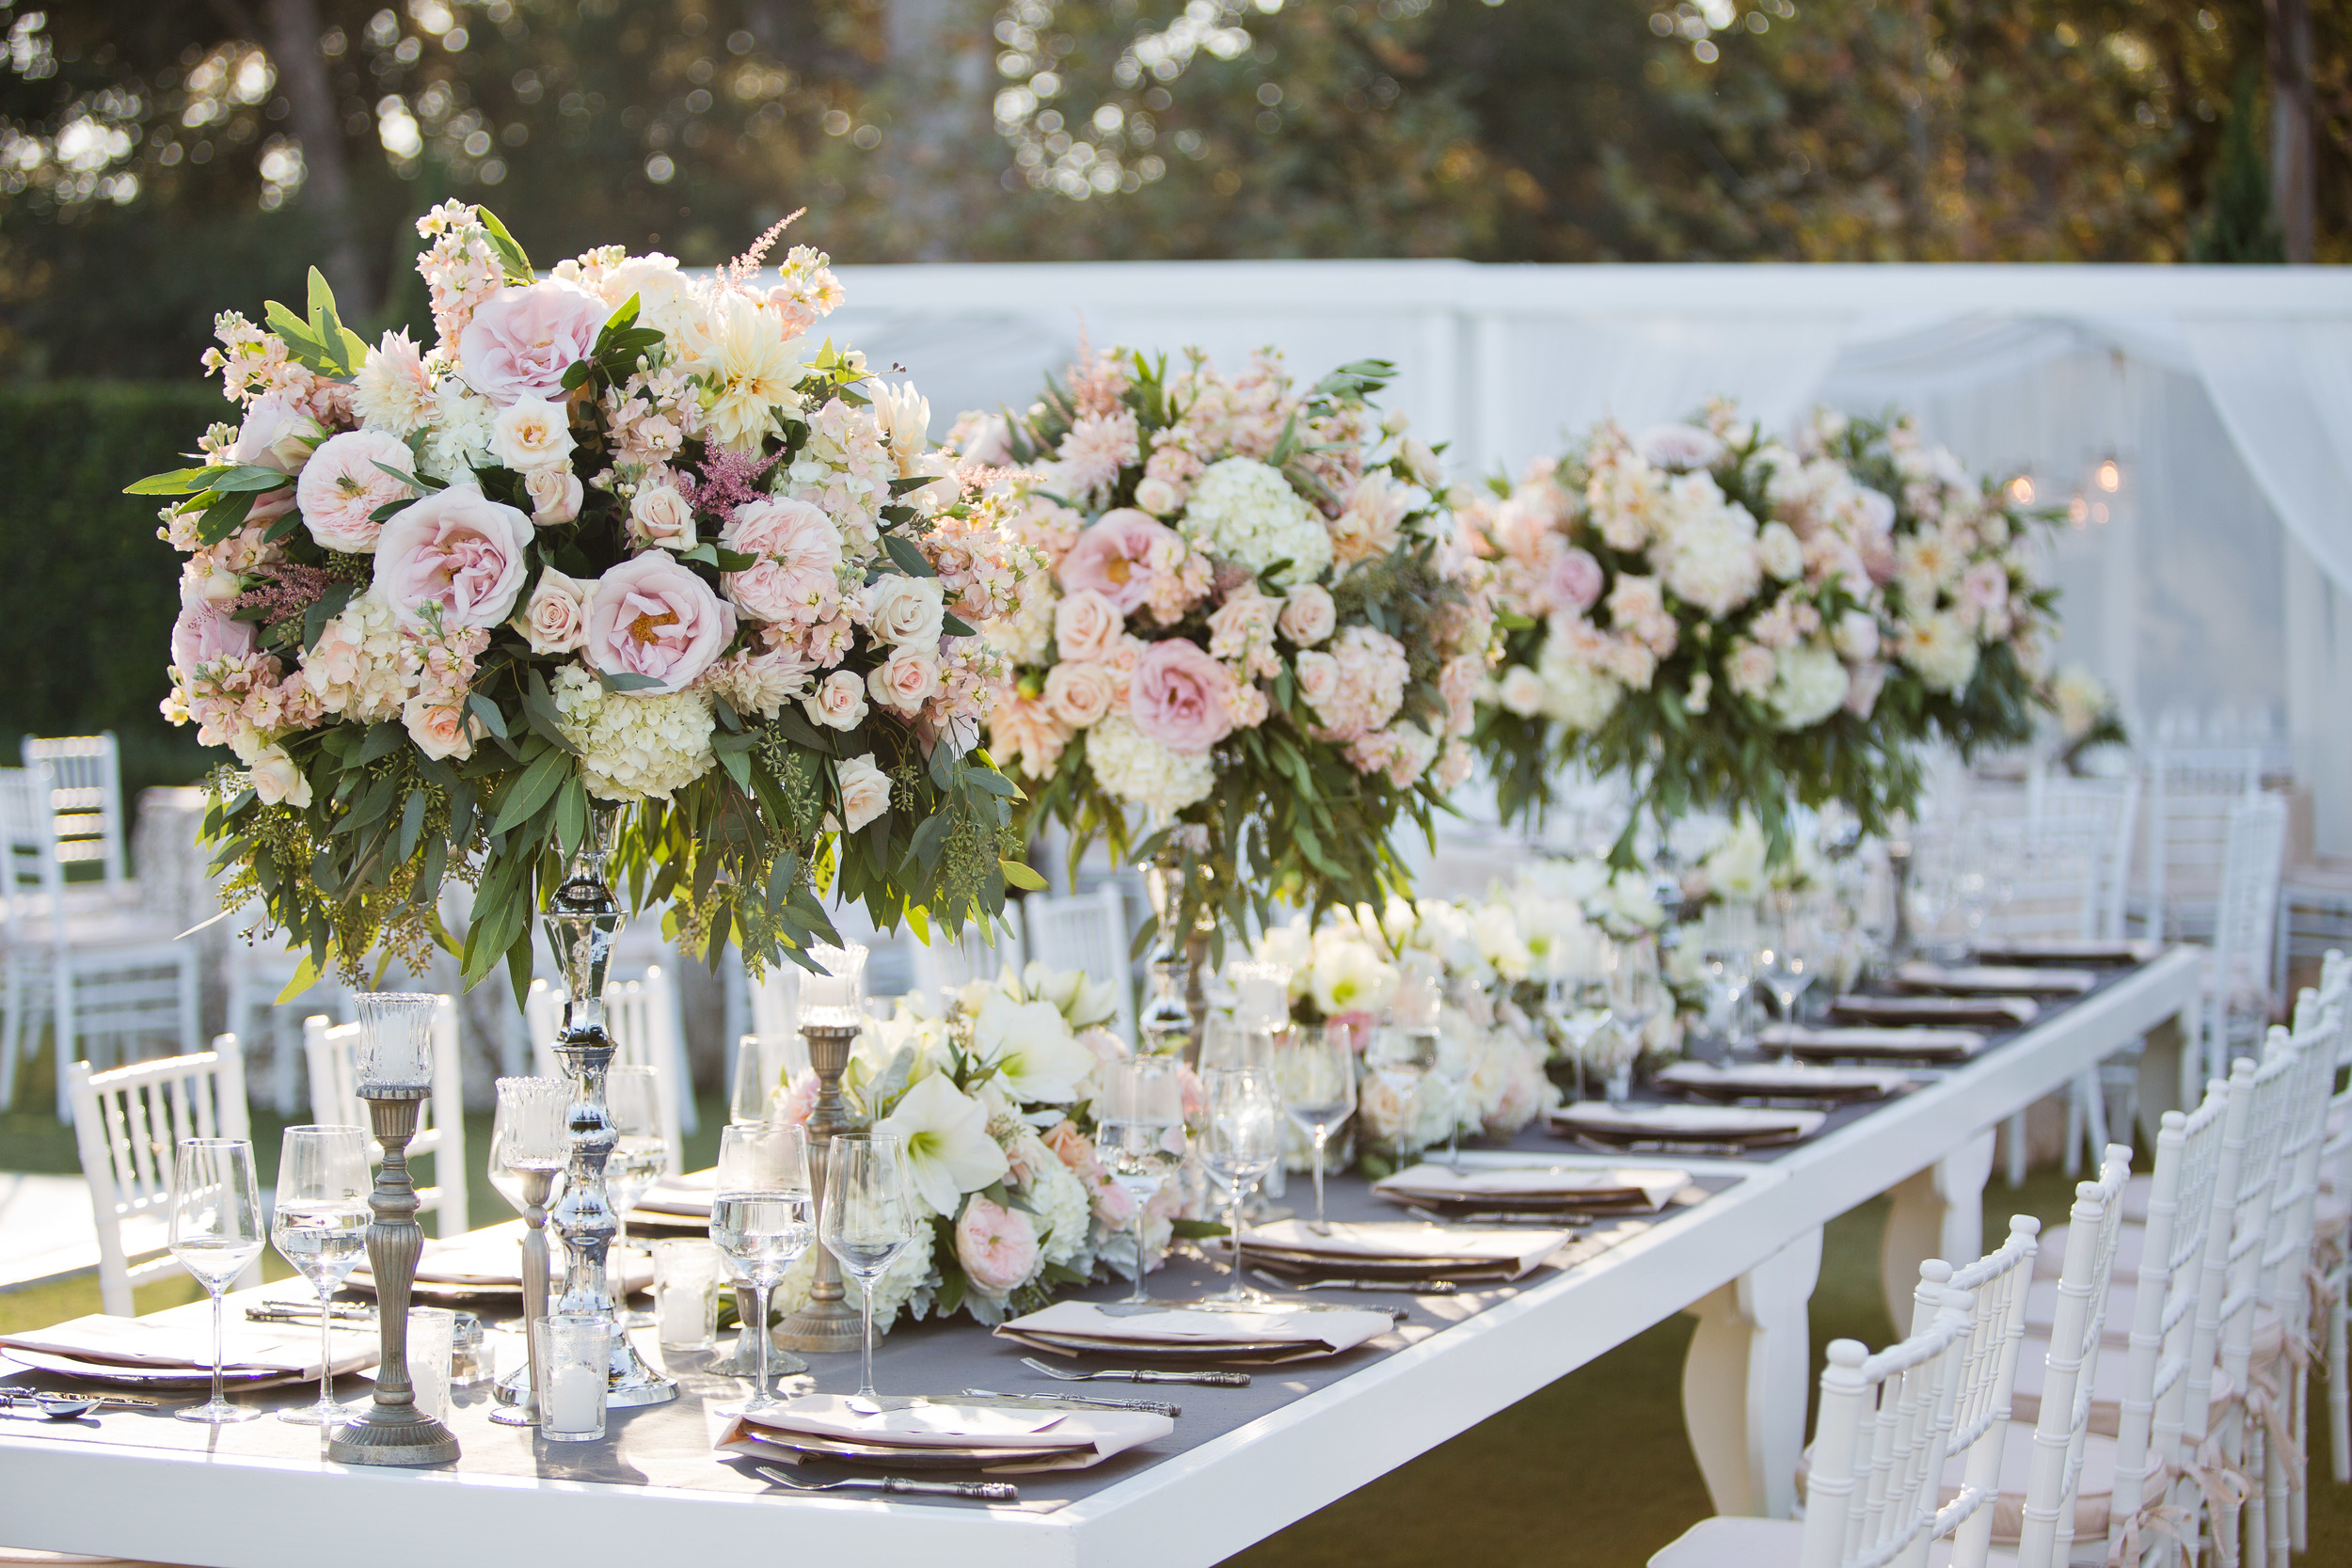 Ashleigh Taylor Photography | Cody Floral Design | Santa Barbara Wedding Florist